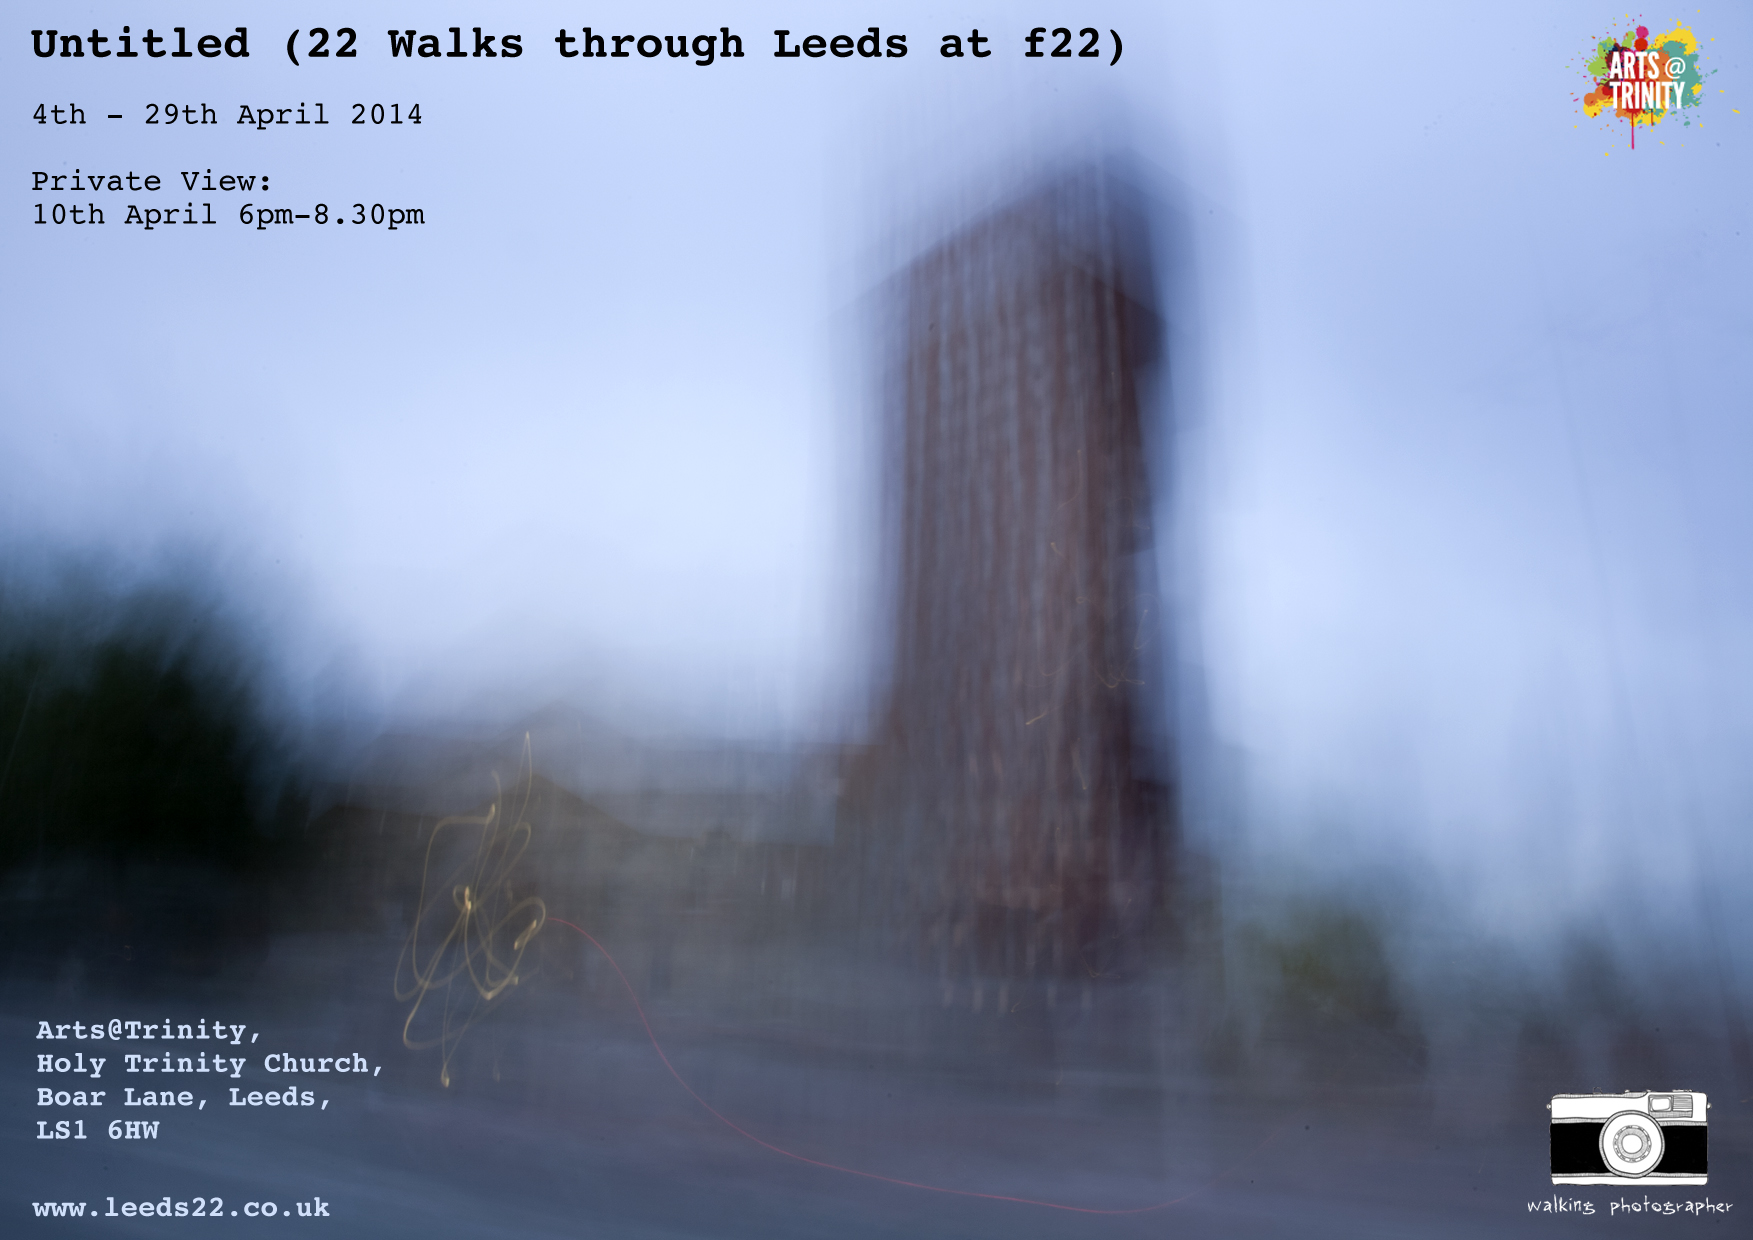 Untitled (22 Walks Through Leeds at f22) exhibition flyer for Arts @ Trinity